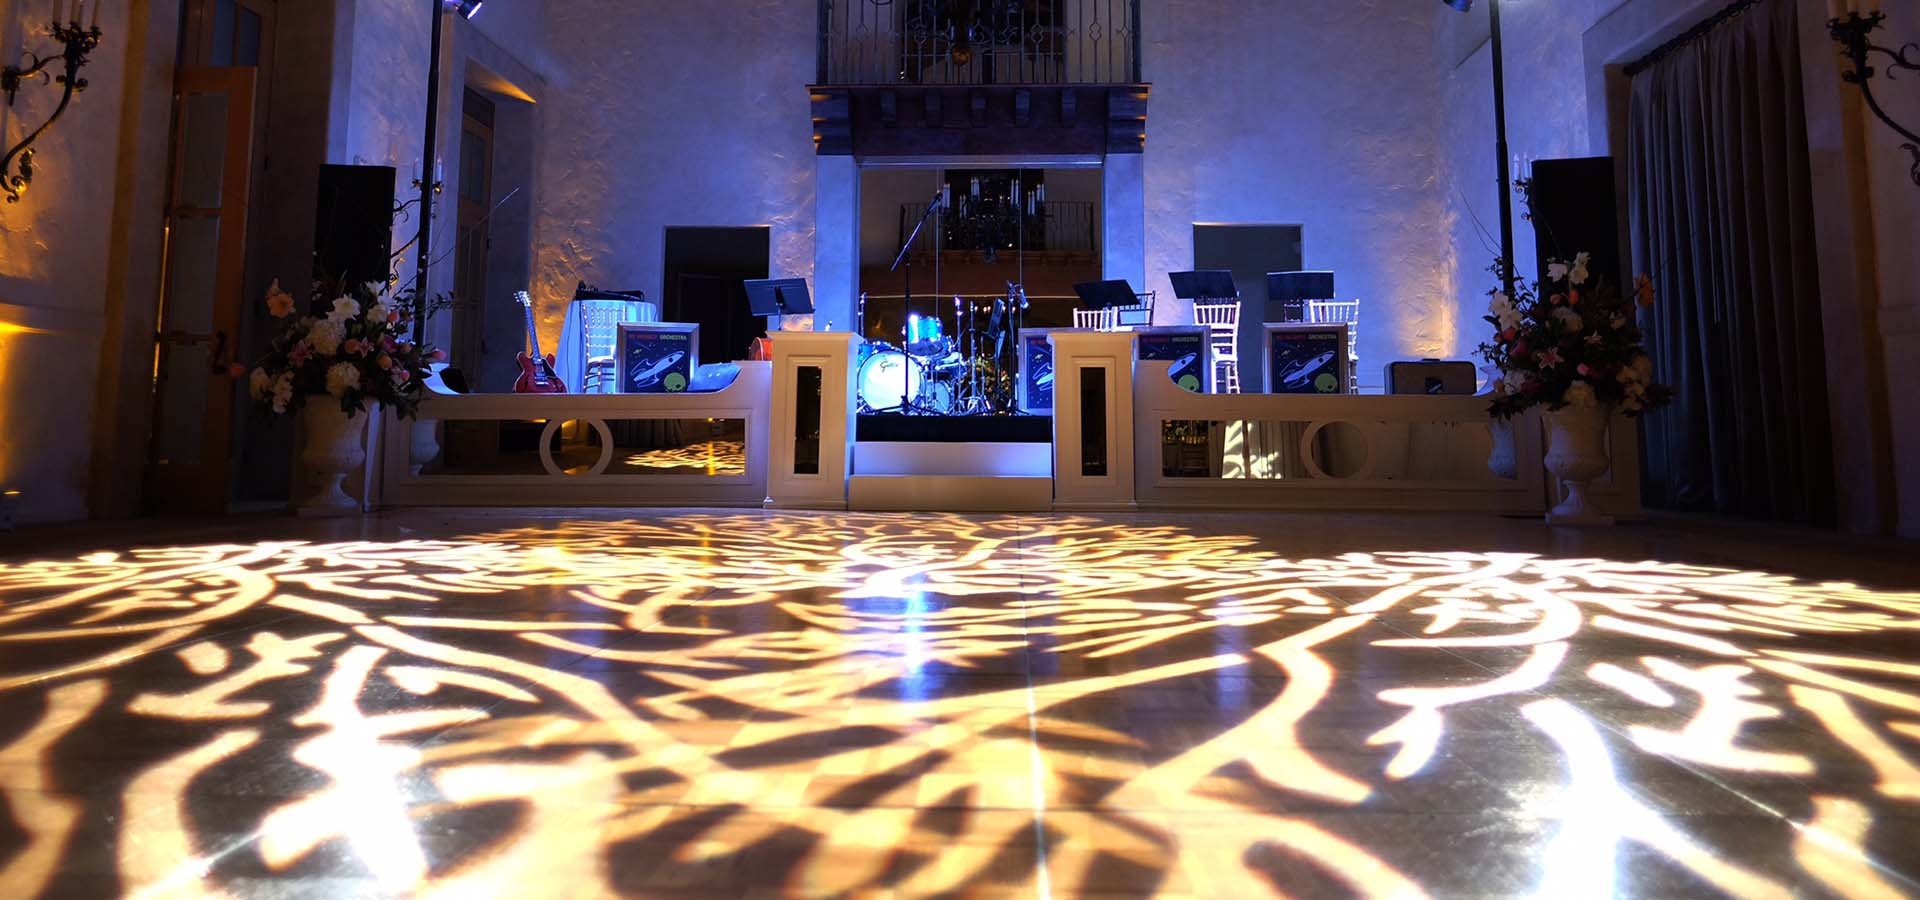 Event Lighting Rental Store in Monterey Peninsula